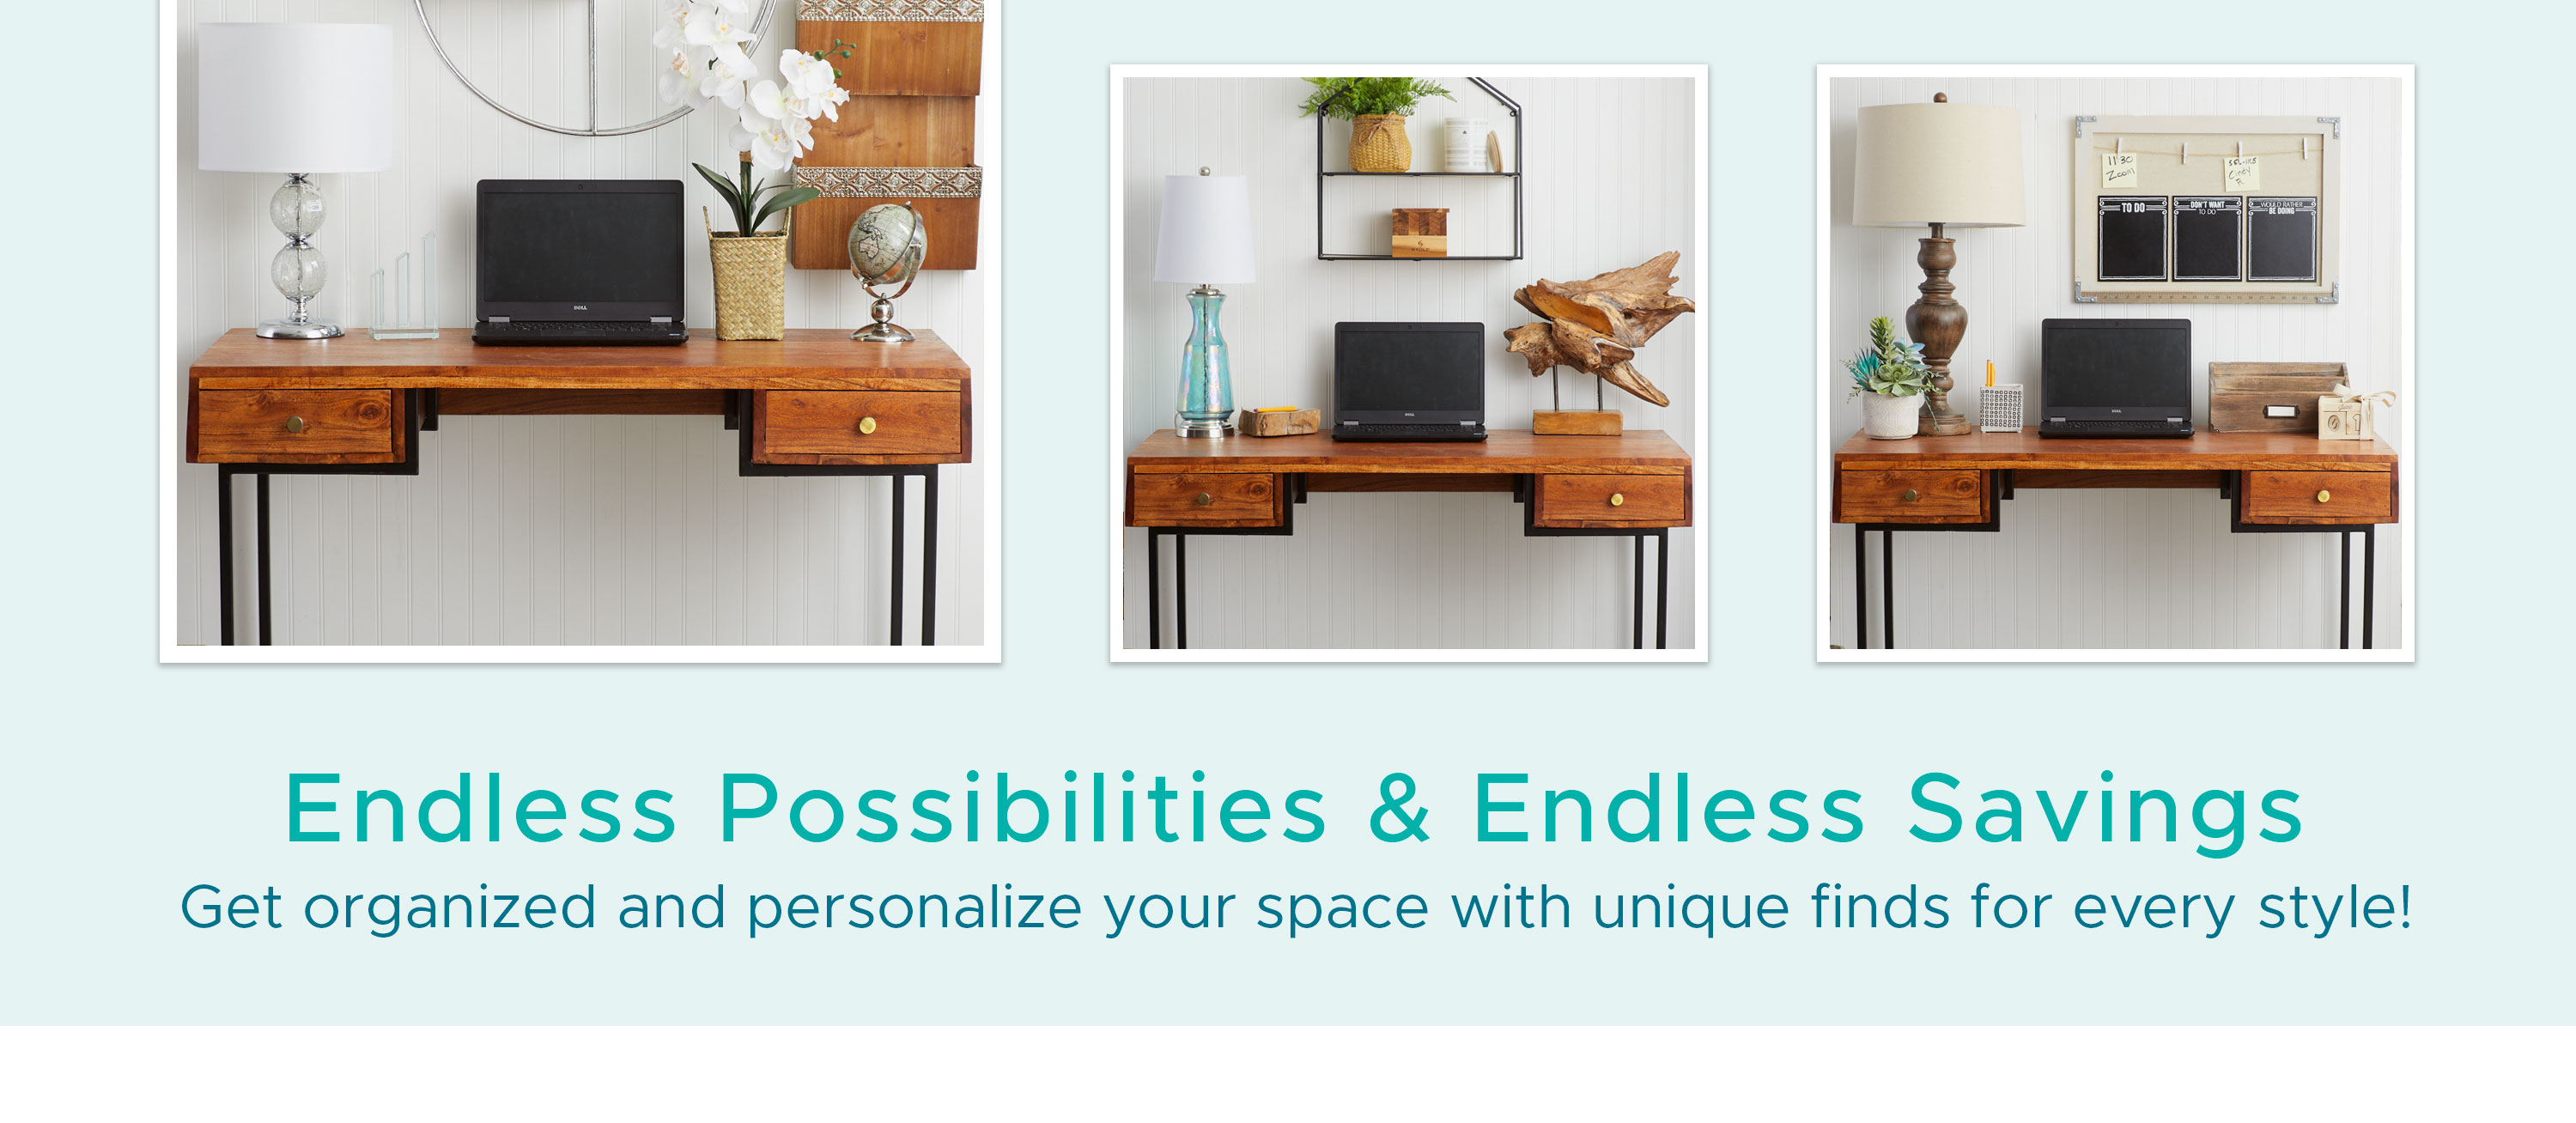 Endless Possibilities & Endless Savings - Get organized and personalize your space with unique finds for every style!